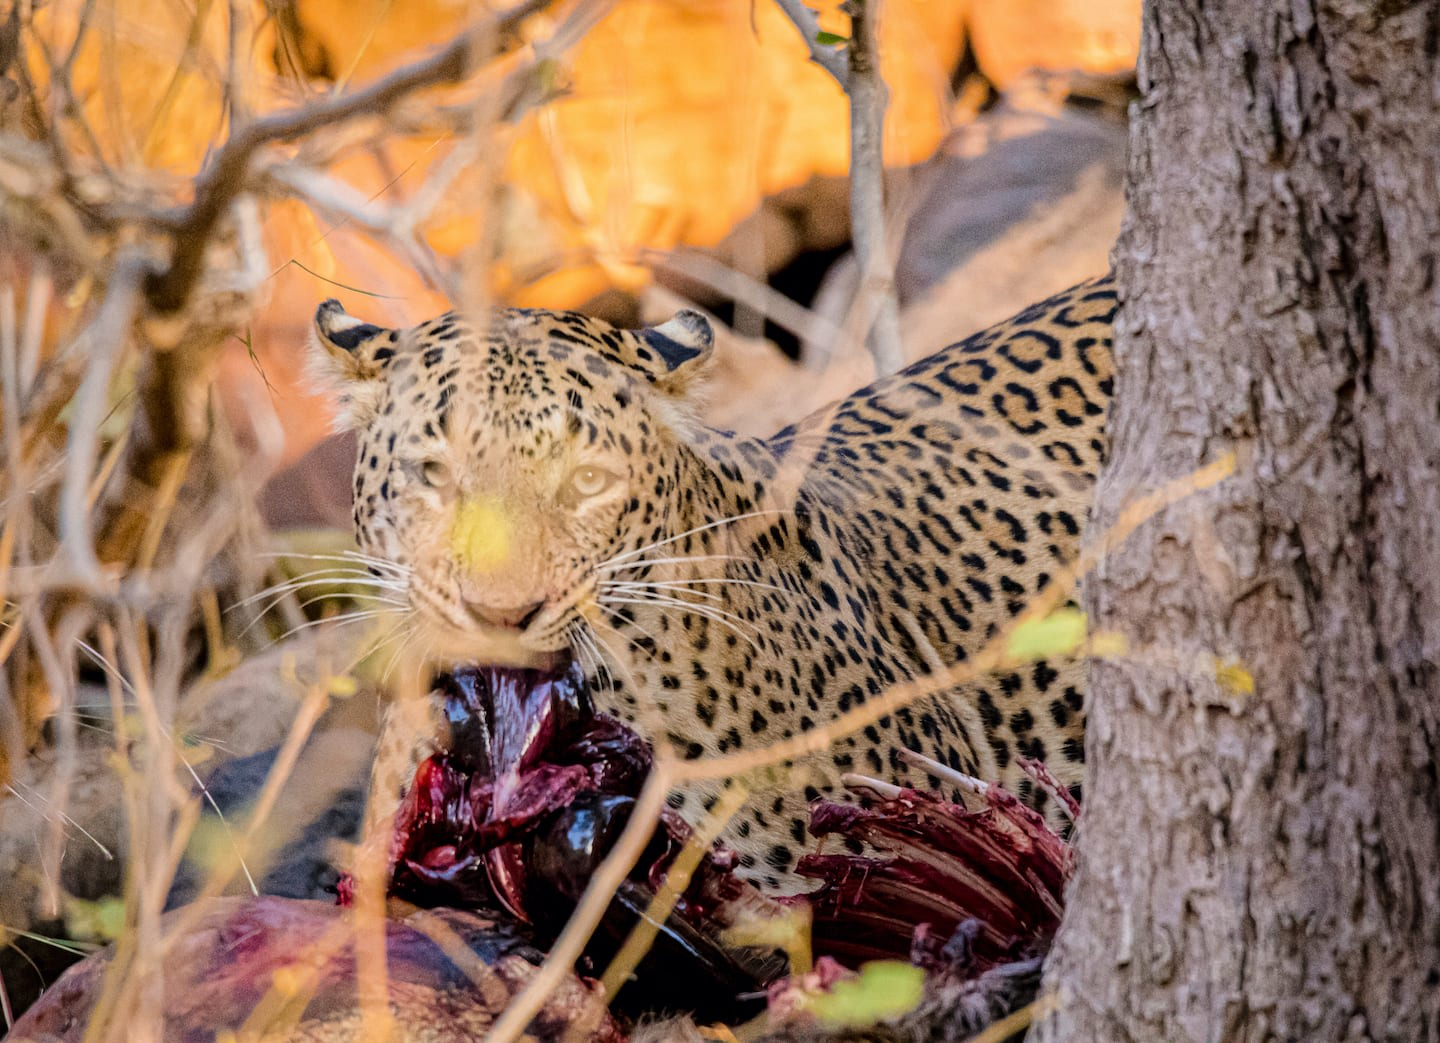 Pound for pound, leopards are the strongest among the big cats. They are able to drag a fairly large kill up a tree to eat in peace, away from fellow predators. Photo: Phalgun Patel